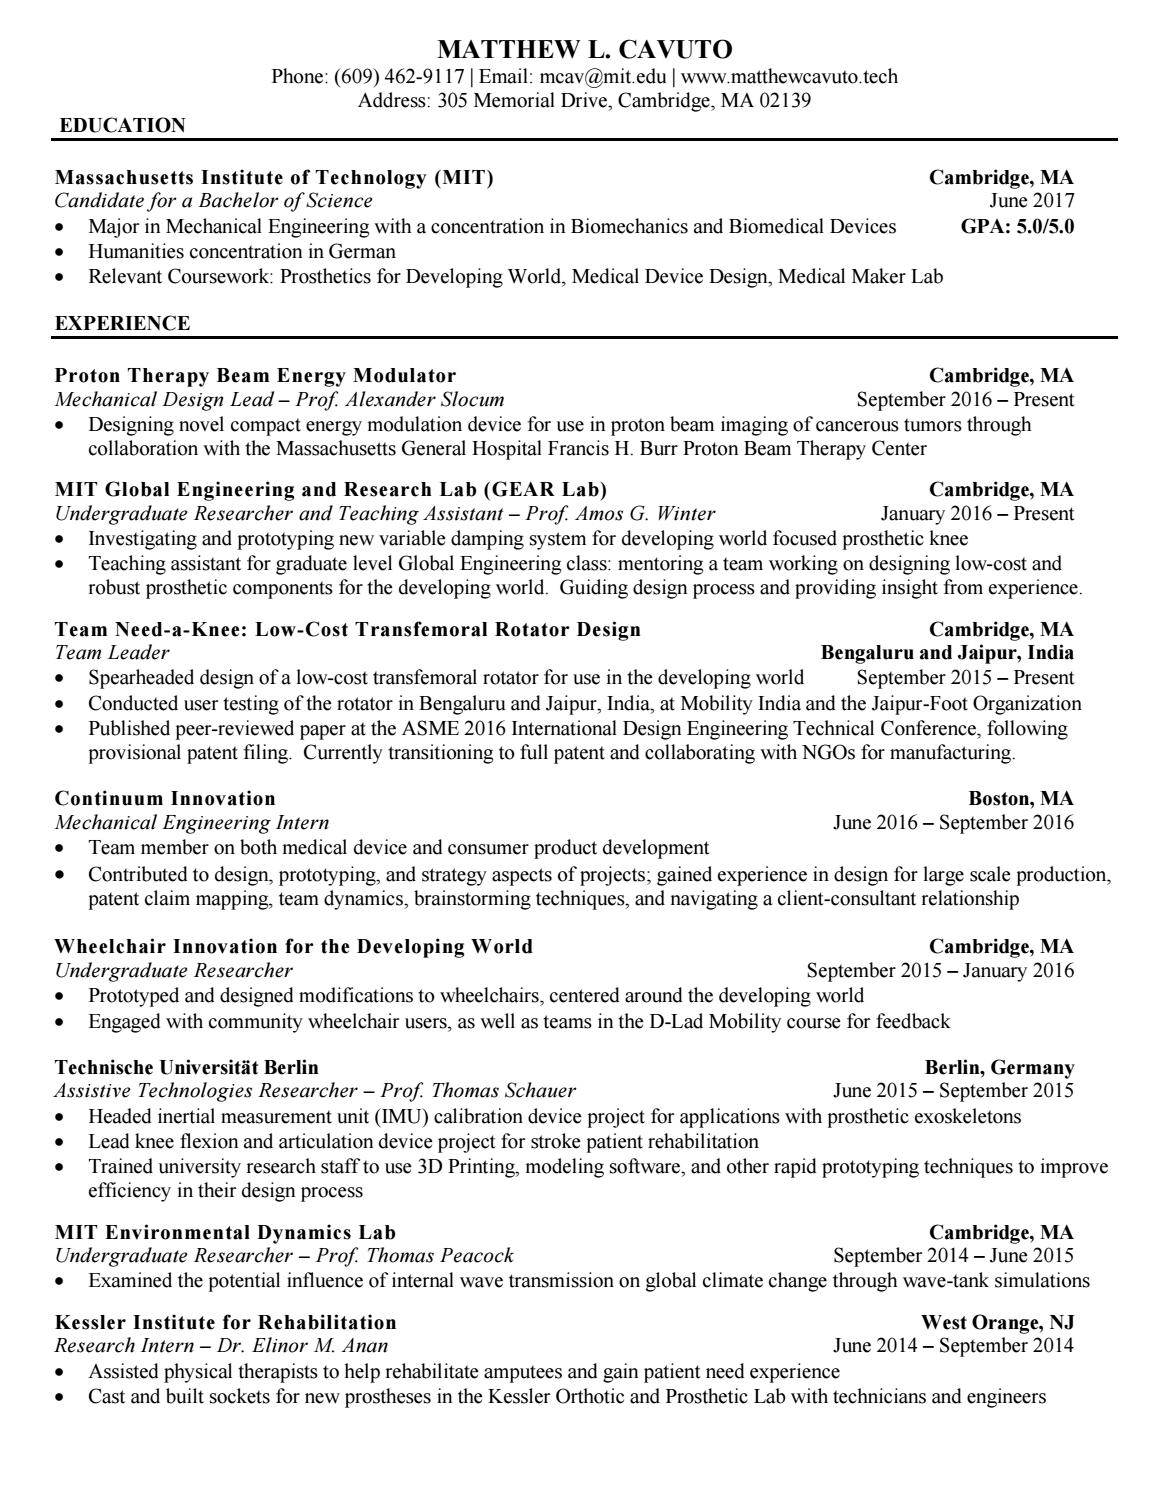 mit sample resume Resumes/cover letters resumes/cover letters resumes a resume is a brief summary of your qualifications, education, and experiences relevant to your job search objective.